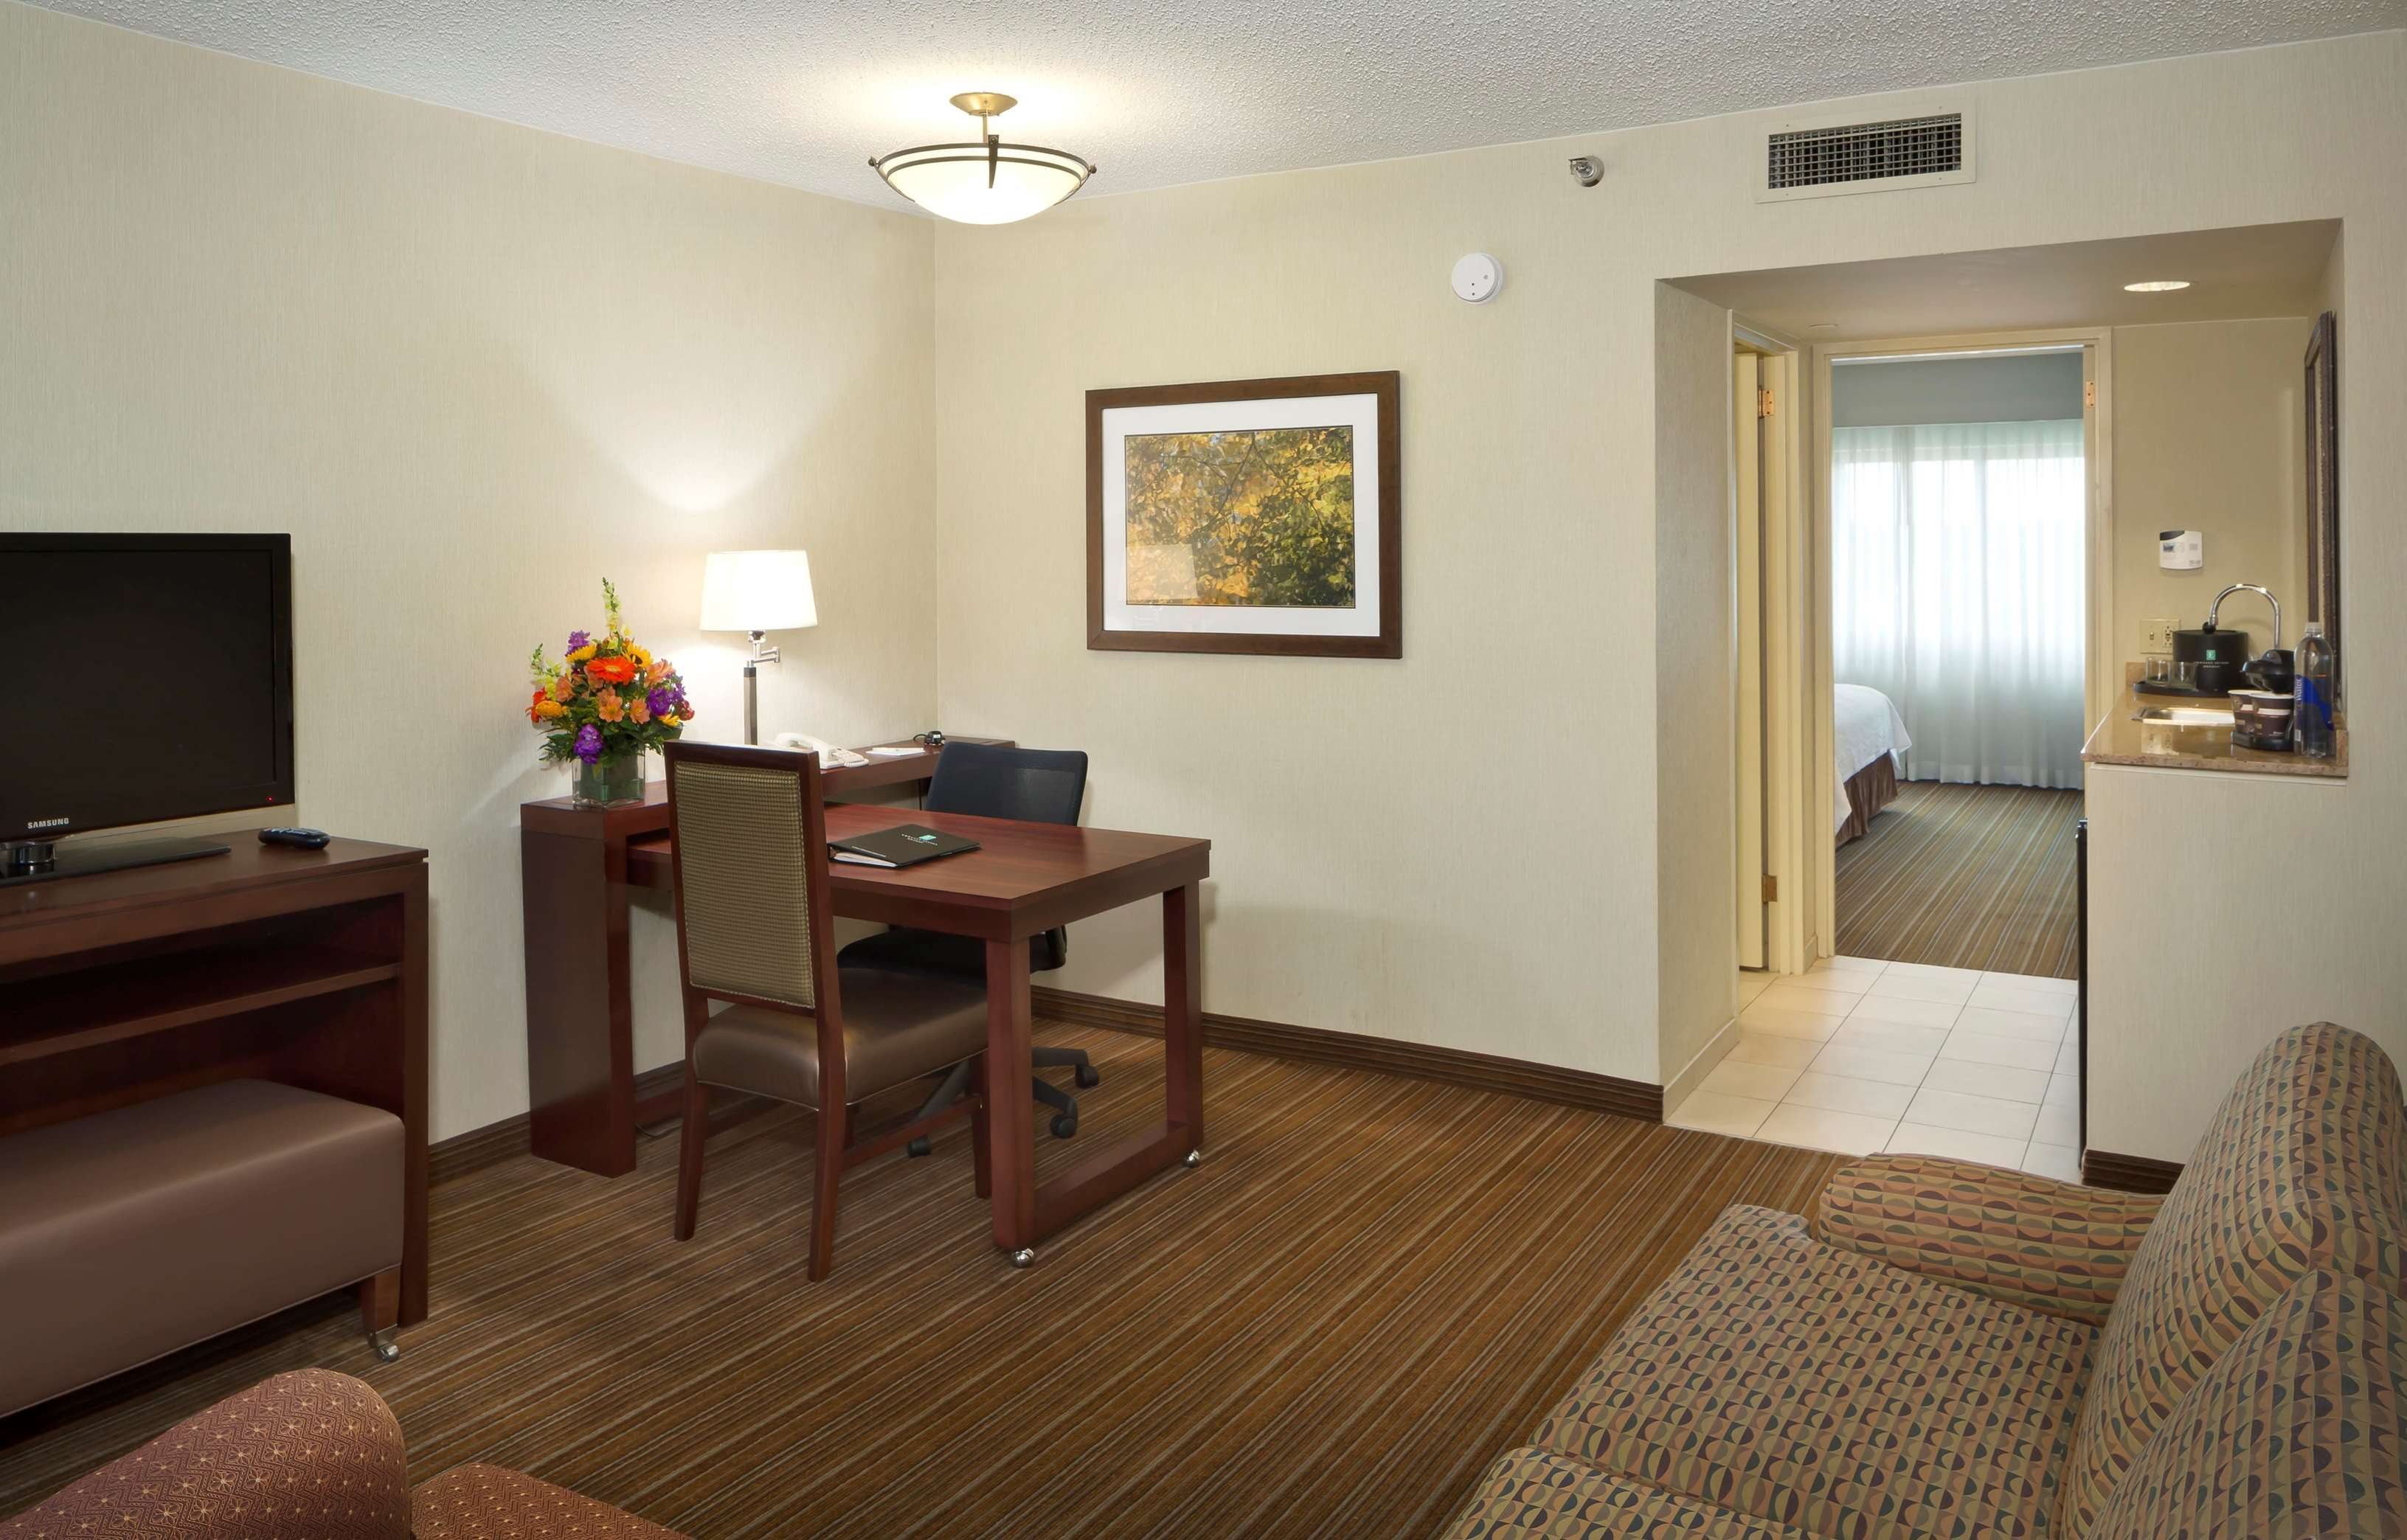 Embassy suites coupon code